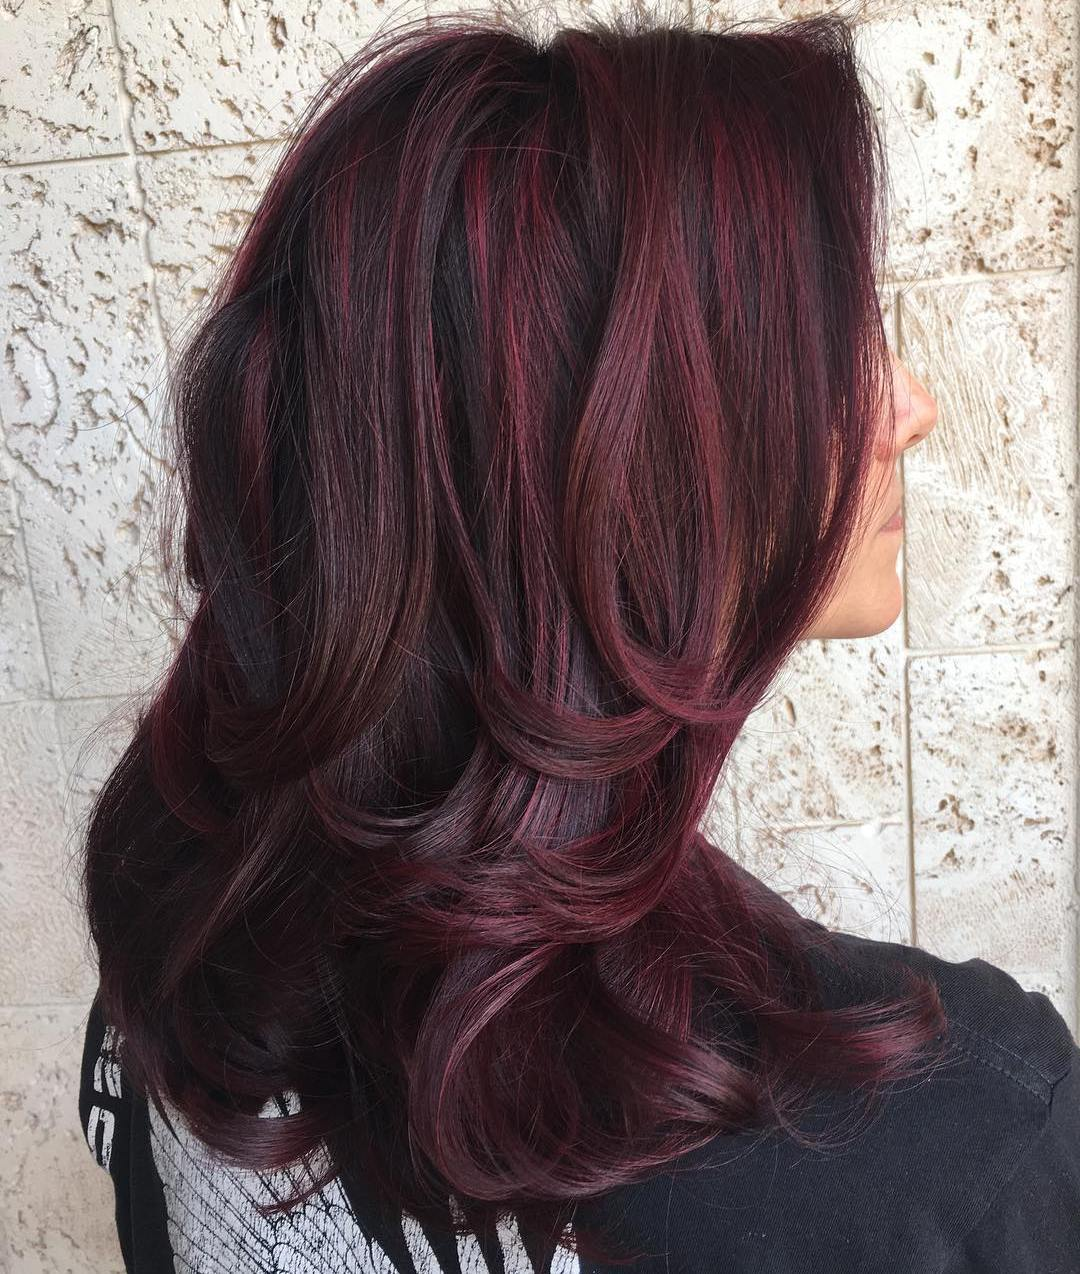 How To Get The Perfect Shade Of Dark Burgundy Brown Hair Color